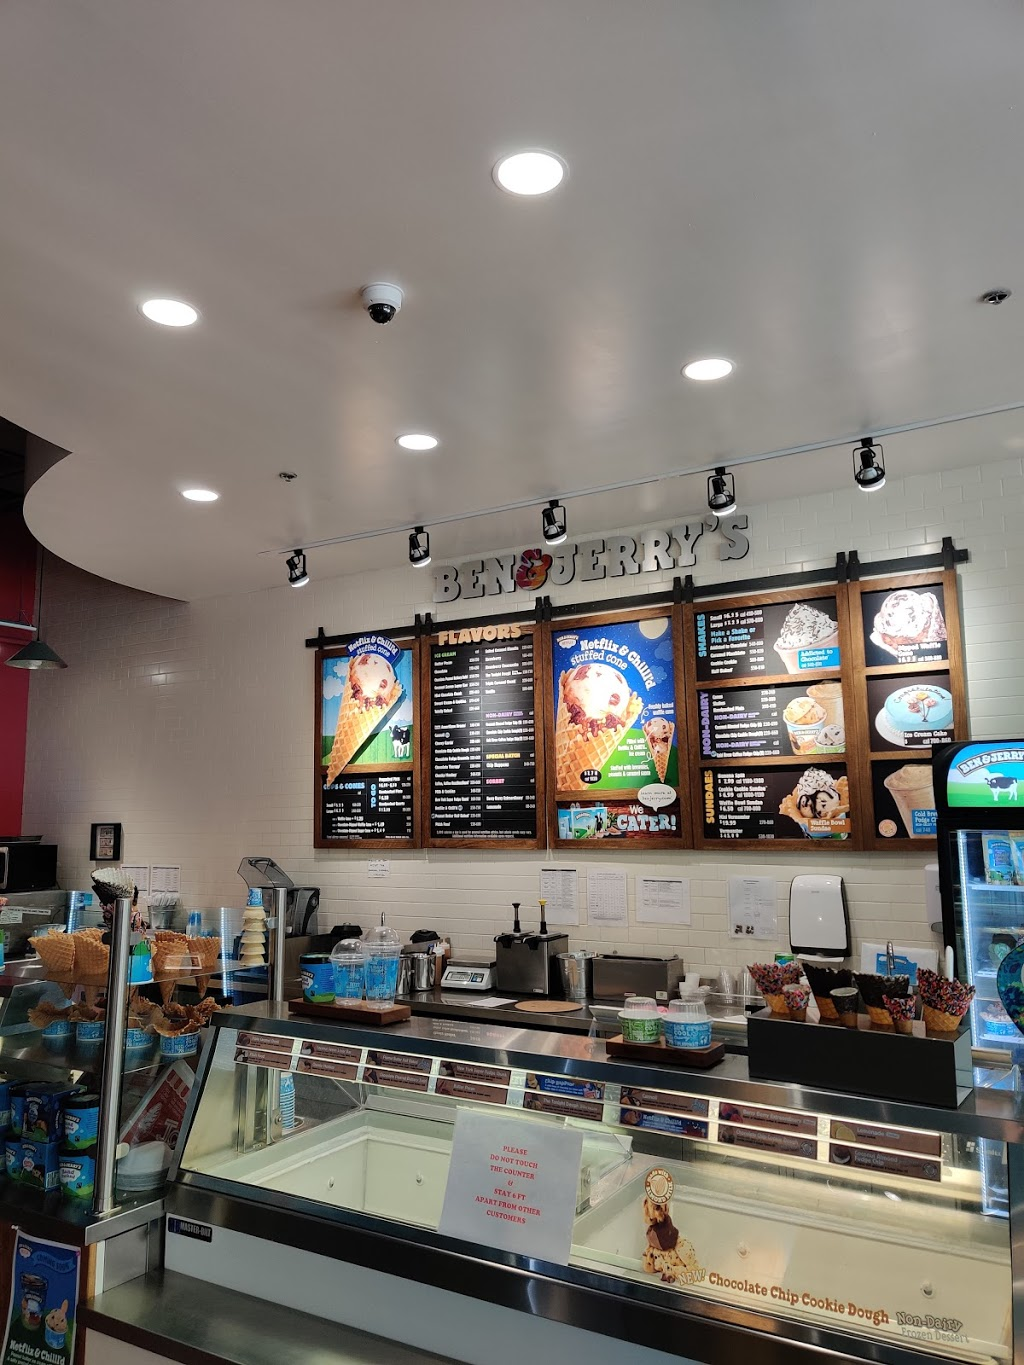 Ben & Jerry's   bakery   159 Temple St, New Haven, CT 06510, USA   2037124300 OR +1 203-712-4300